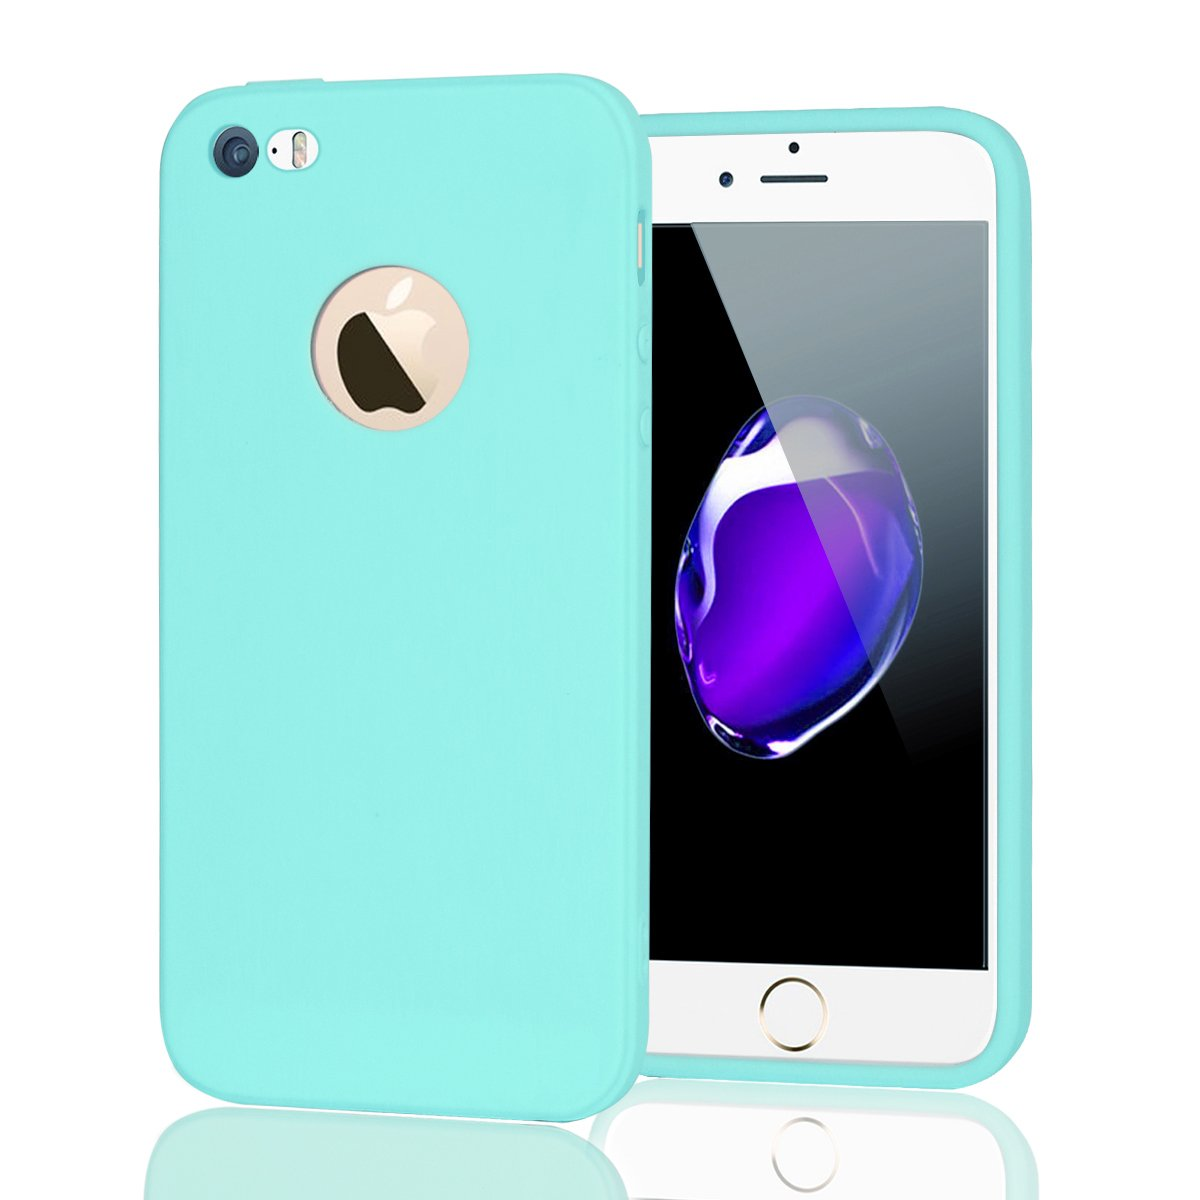 Funda iPhone 5S Silicona Carcasa Suave Flexible TPU Ultra Fina Delgado Anti Golpes Choque Case Mó vil Candy Color Cubierta Protectora Caja Tapa iPhone 5/5S/SE Negro CoverTpu